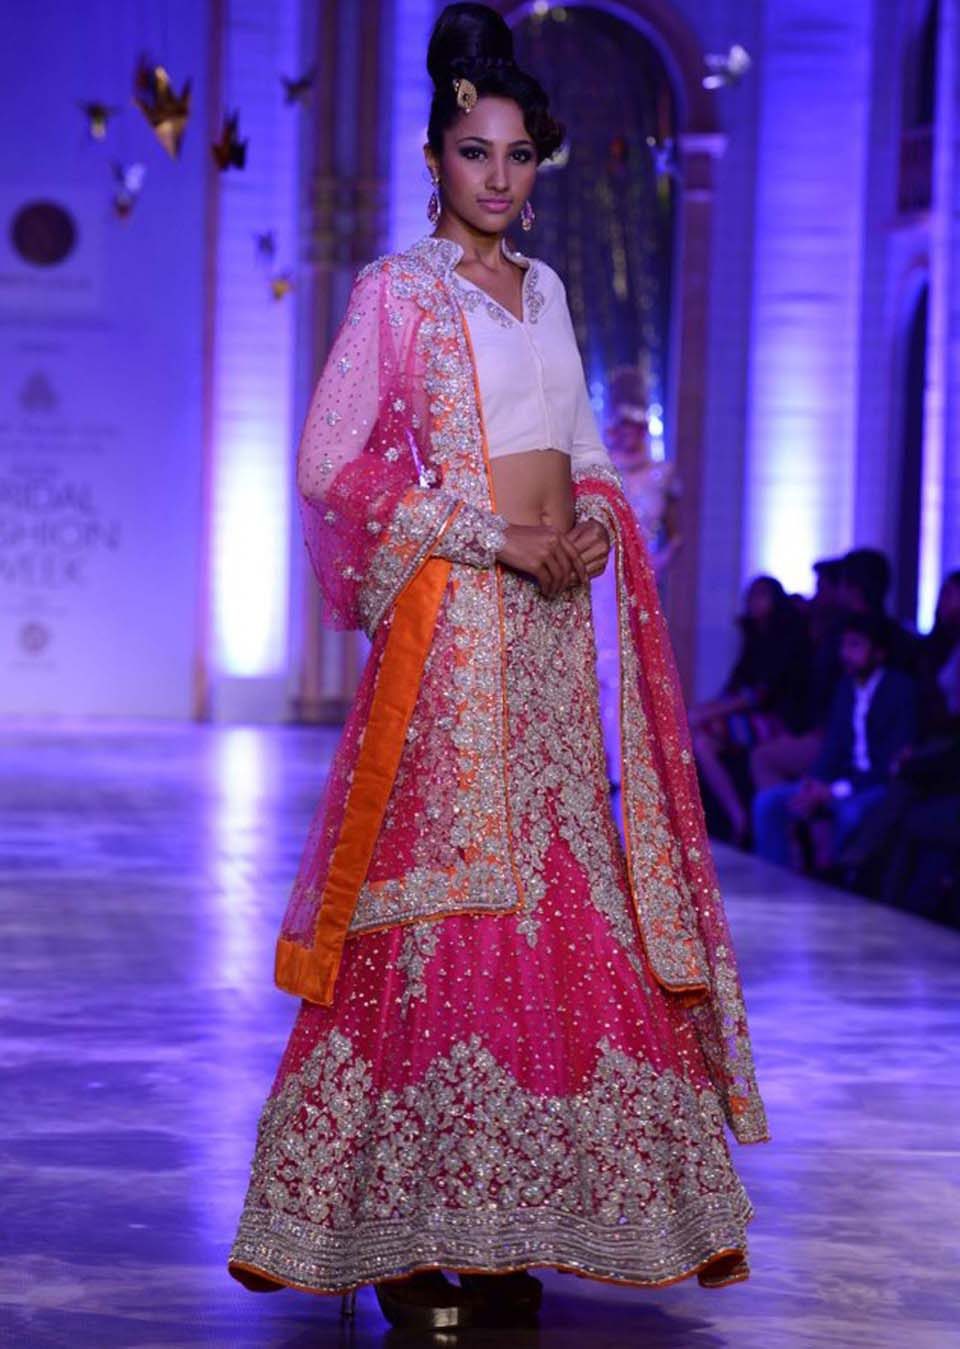 Manish Malhotra-Top 10 Popular & Best Indian Bridal Dresses Designers- Hit List (1)